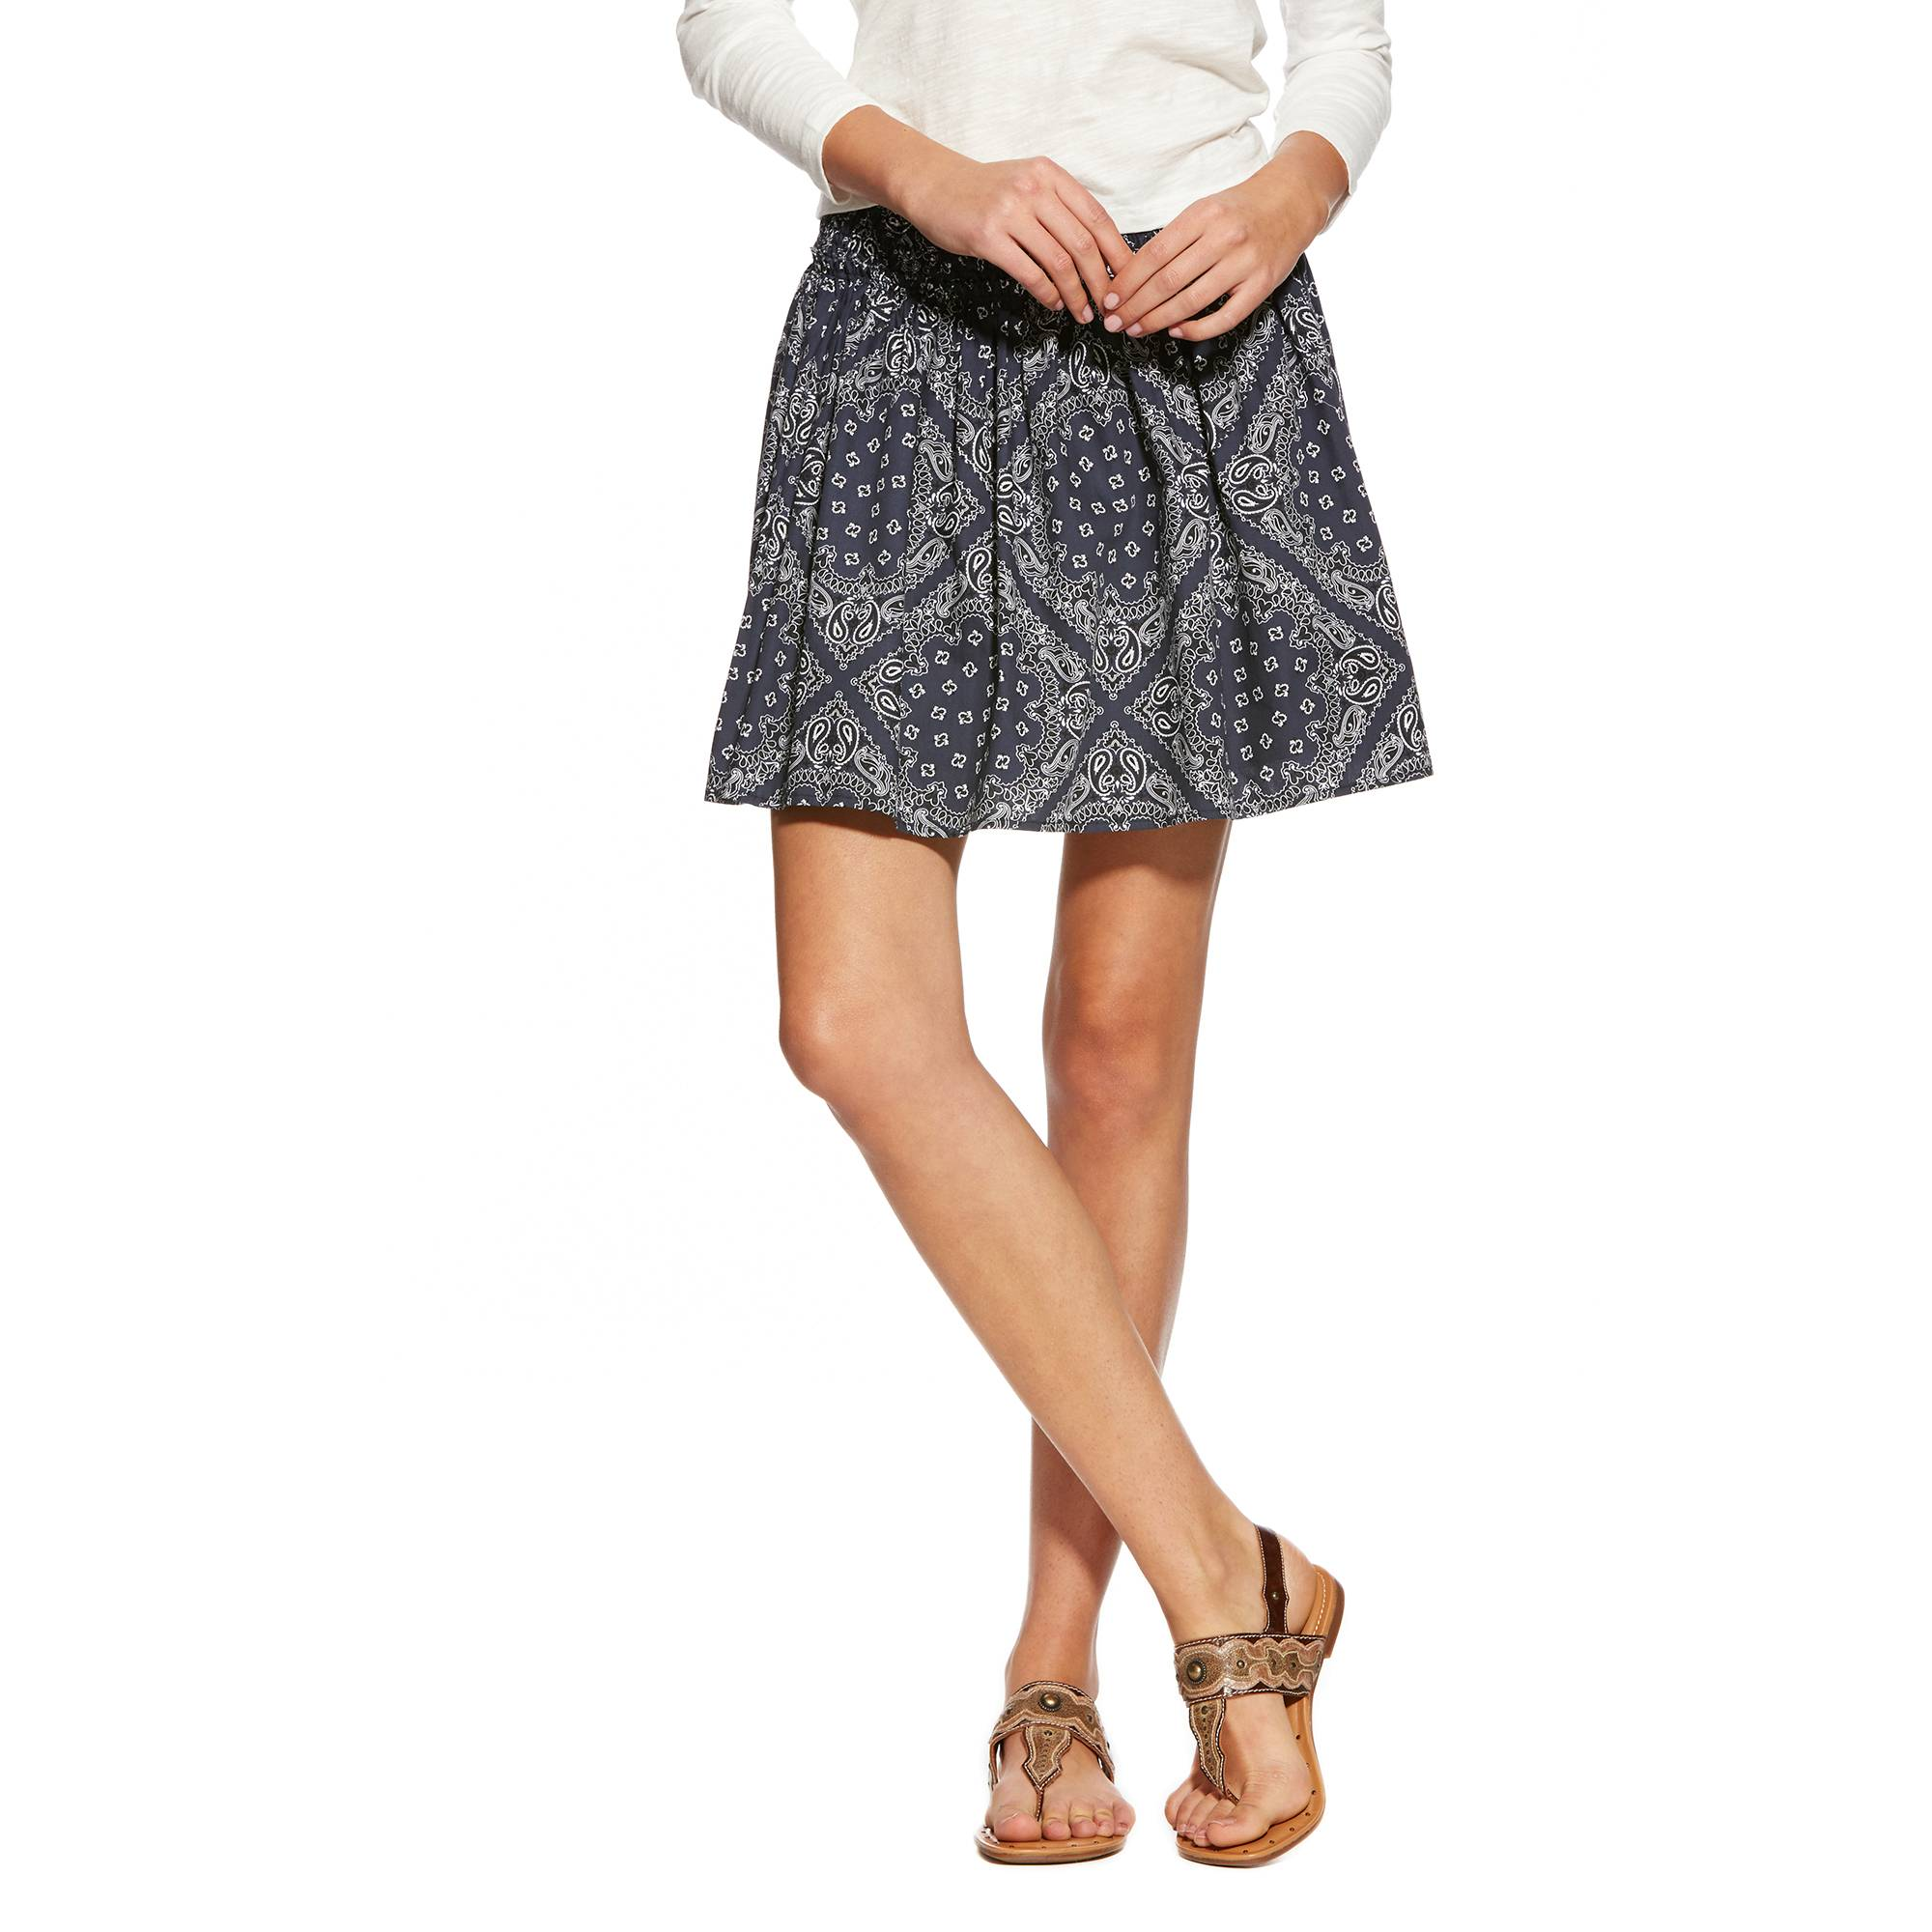 Ariat Women's Bandana Print Skirt